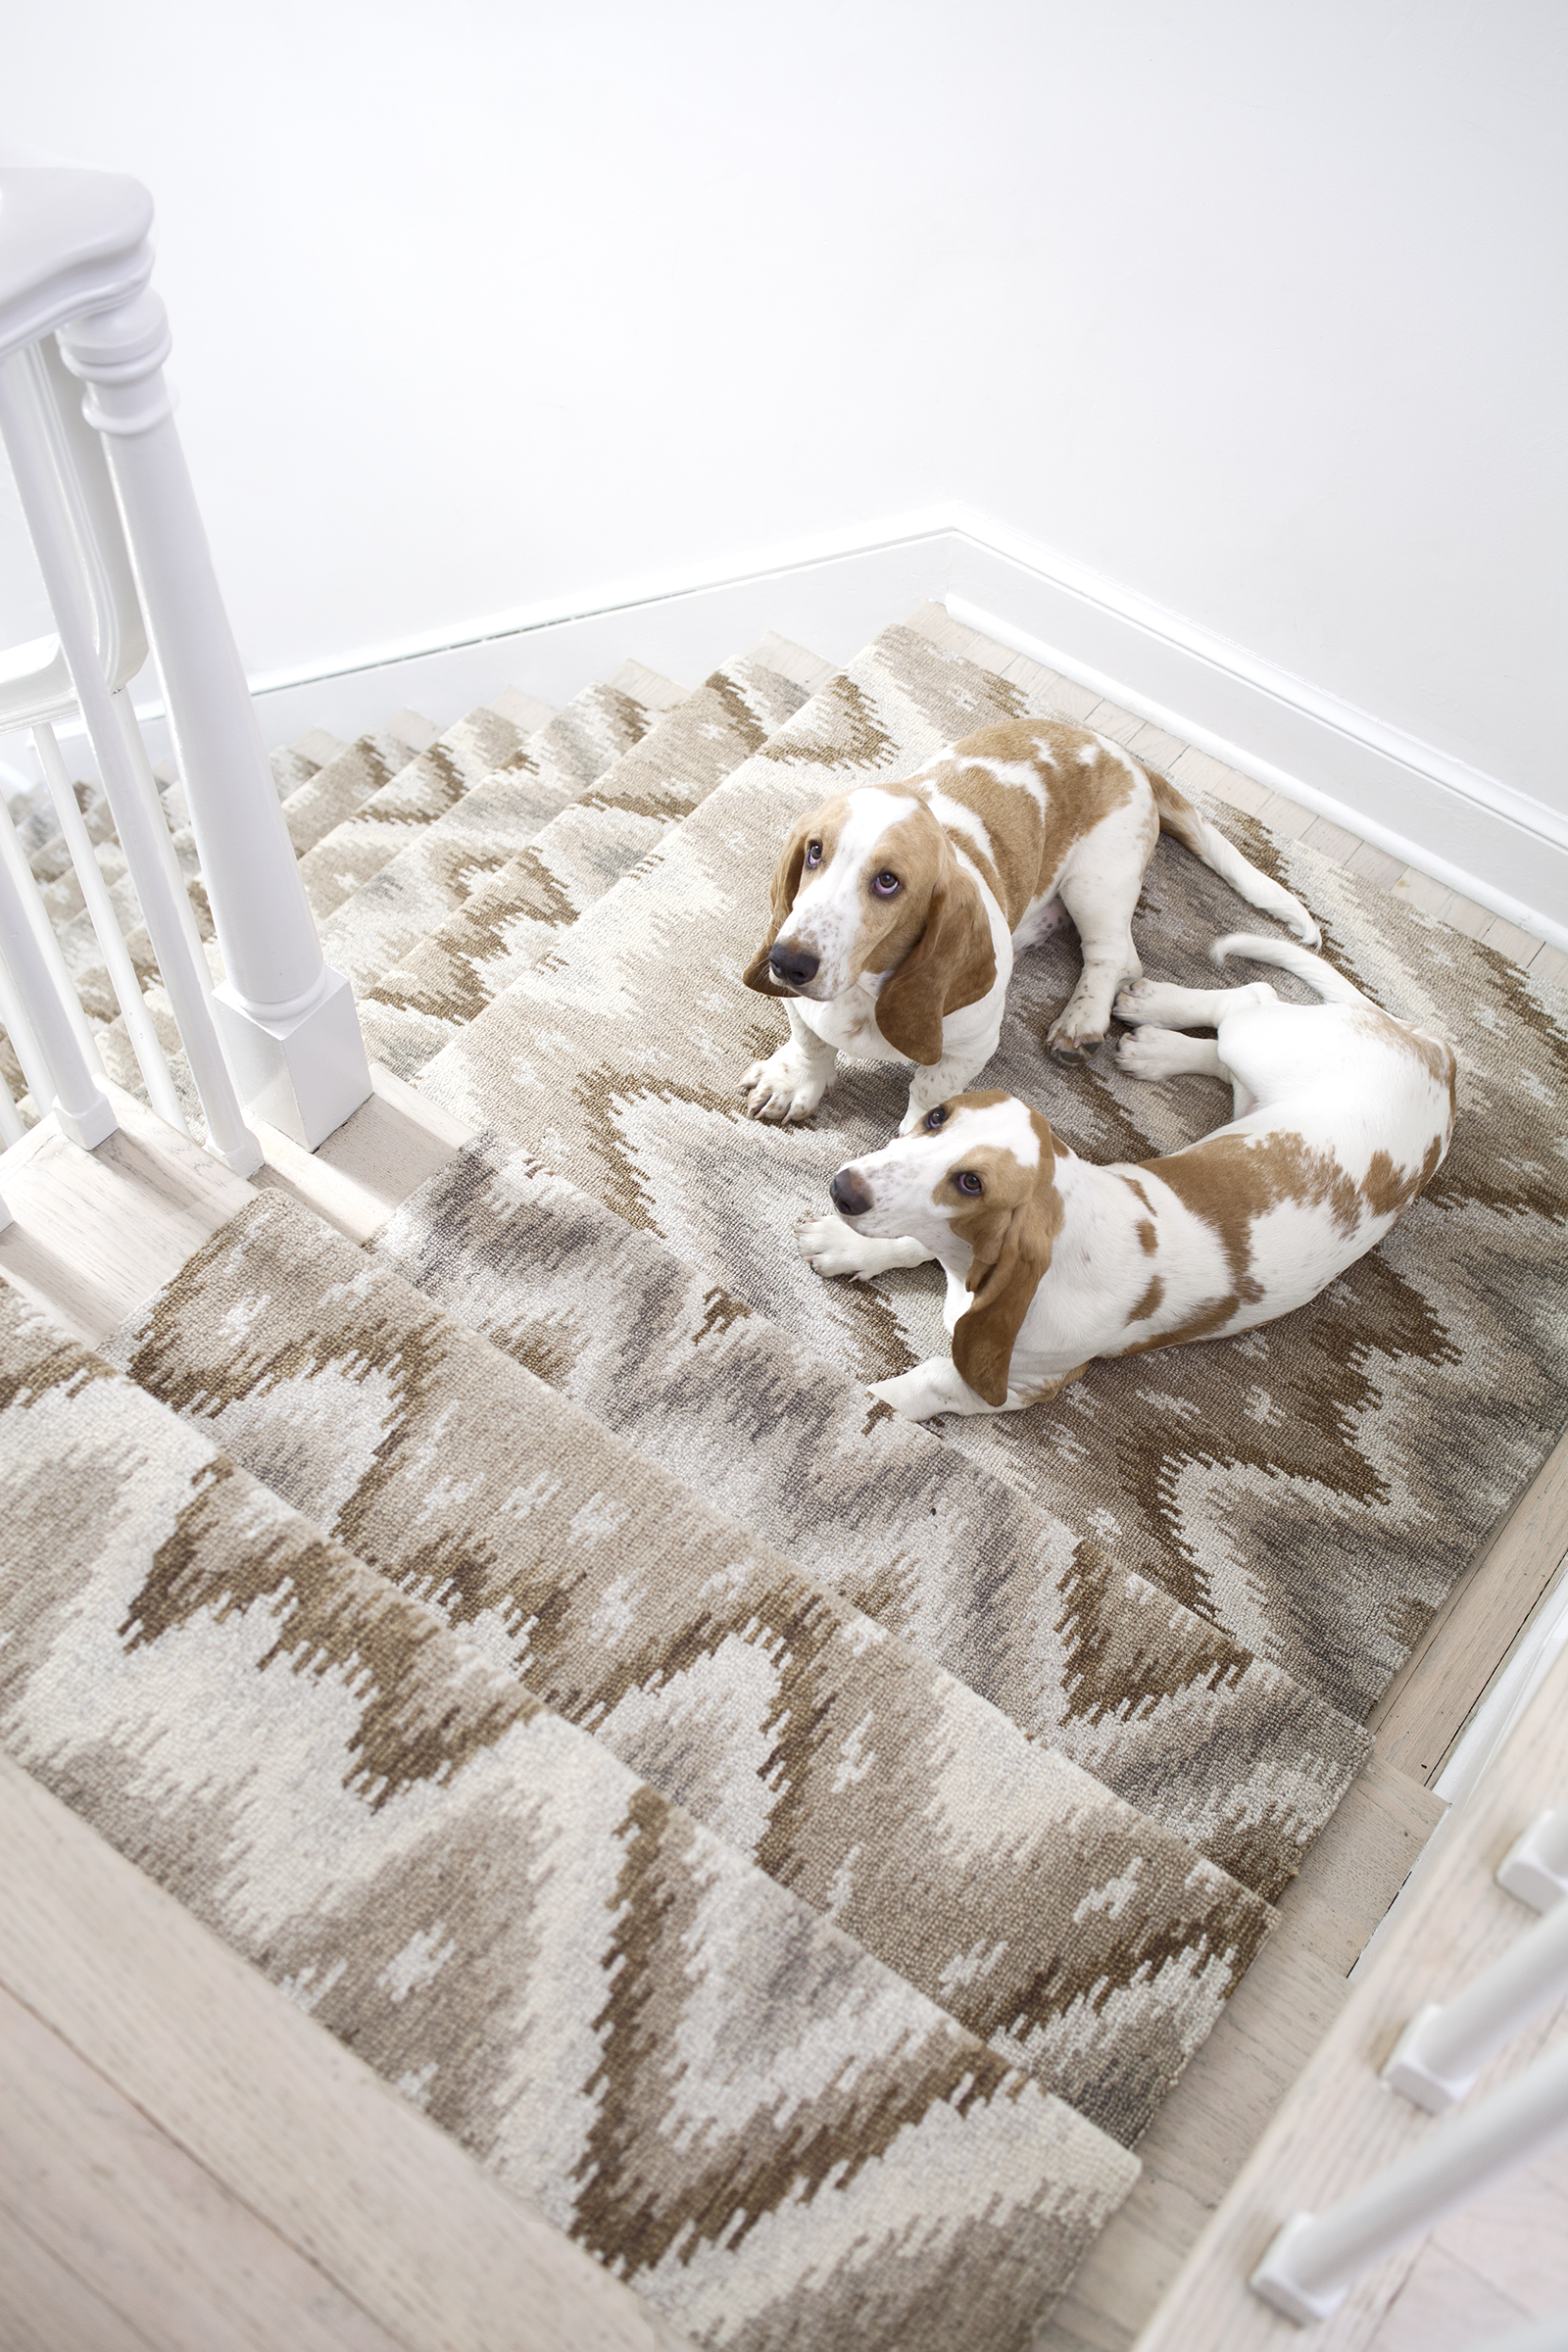 How To Choose A Runner Rug For A Stair Installation